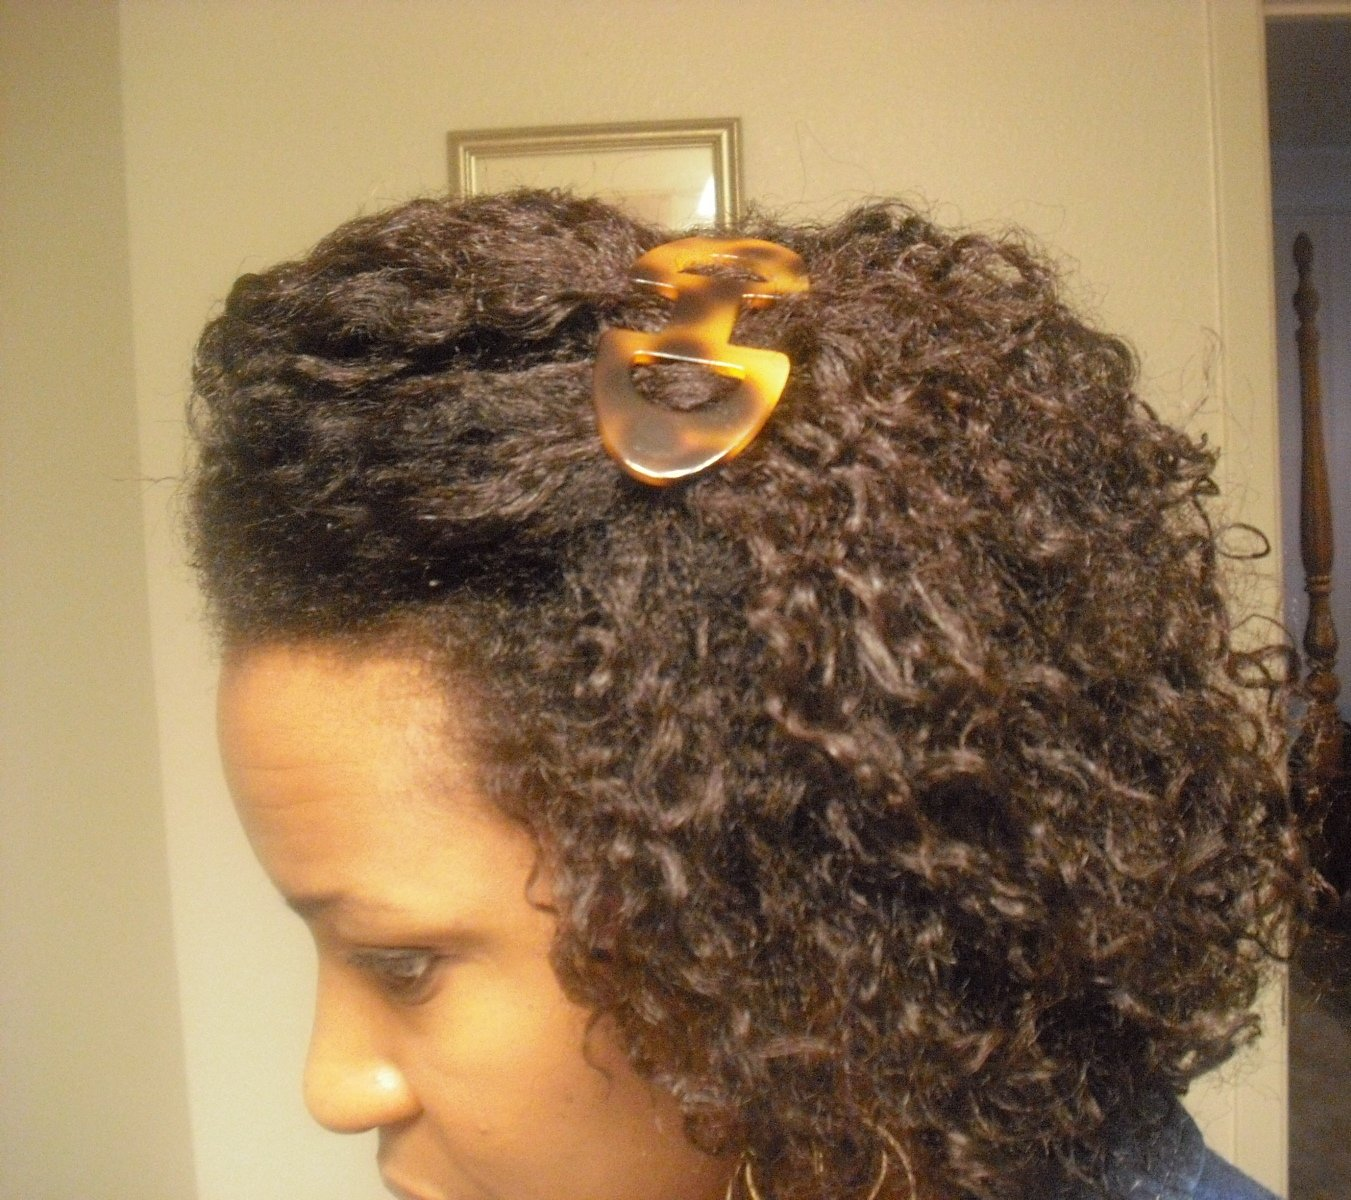 The Best Healthy Happy Hair Transitioning To Natural Hair Need Help Pictures